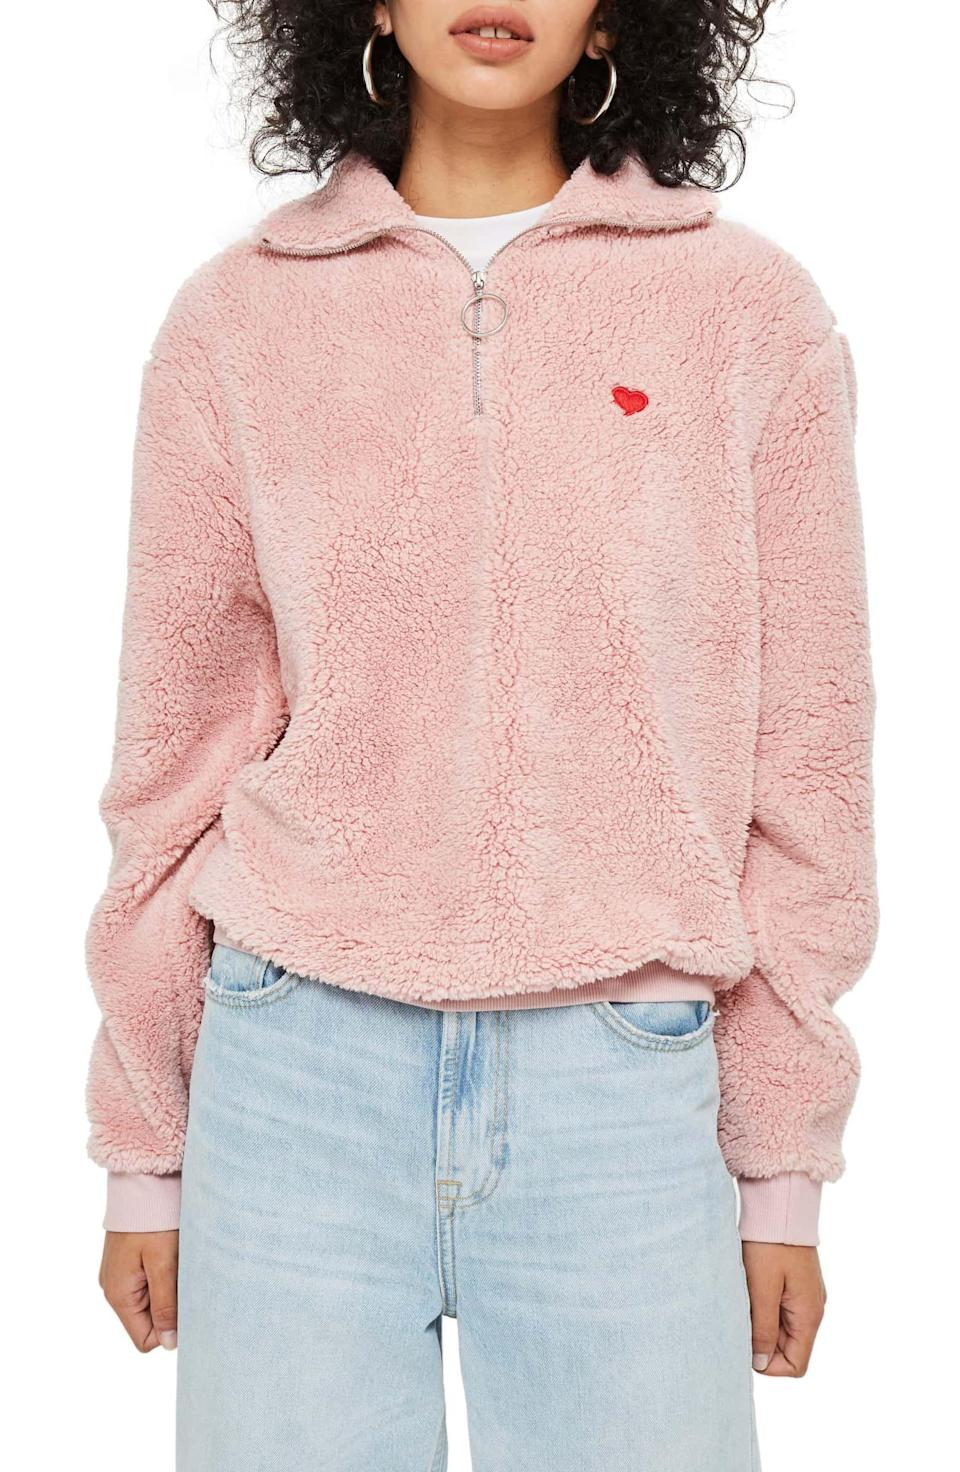 "<p><strong>Topshop</strong></p><p>nordstrom.com</p><p><strong>$50.00</strong></p><p><a href=""https://shop.nordstrom.com/s/topshop-borg-heart-quarter-zip-pullover/5101322"" rel=""nofollow noopener"" target=""_blank"" data-ylk=""slk:SHOP NOW"" class=""link rapid-noclick-resp"">SHOP NOW</a></p><p>She'll live in this cozy fleece pullover <a href=""https://www.womansday.com/life/g25396453/best-heated-products-for-winter/"" rel=""nofollow noopener"" target=""_blank"" data-ylk=""slk:all winter long"" class=""link rapid-noclick-resp"">all winter long</a> - and she'll think about you every time she slips it on.</p>"